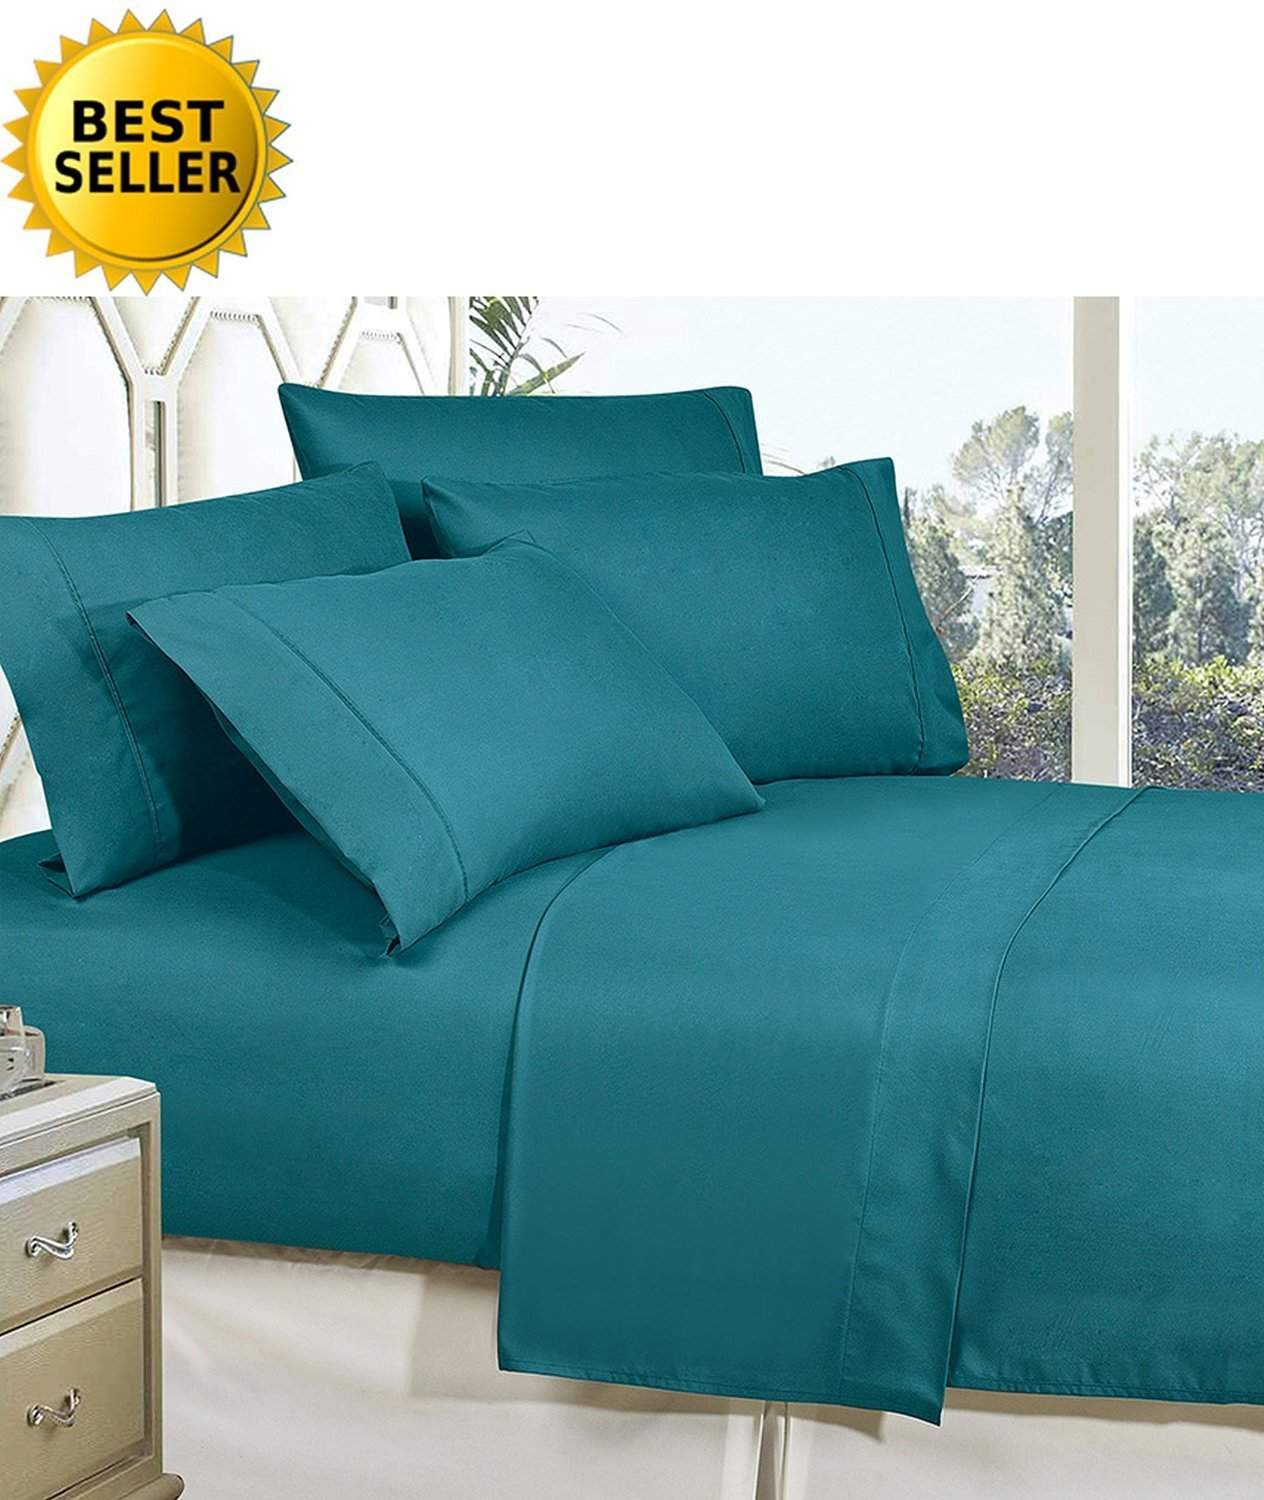 high thread count egyptian cotton sheets